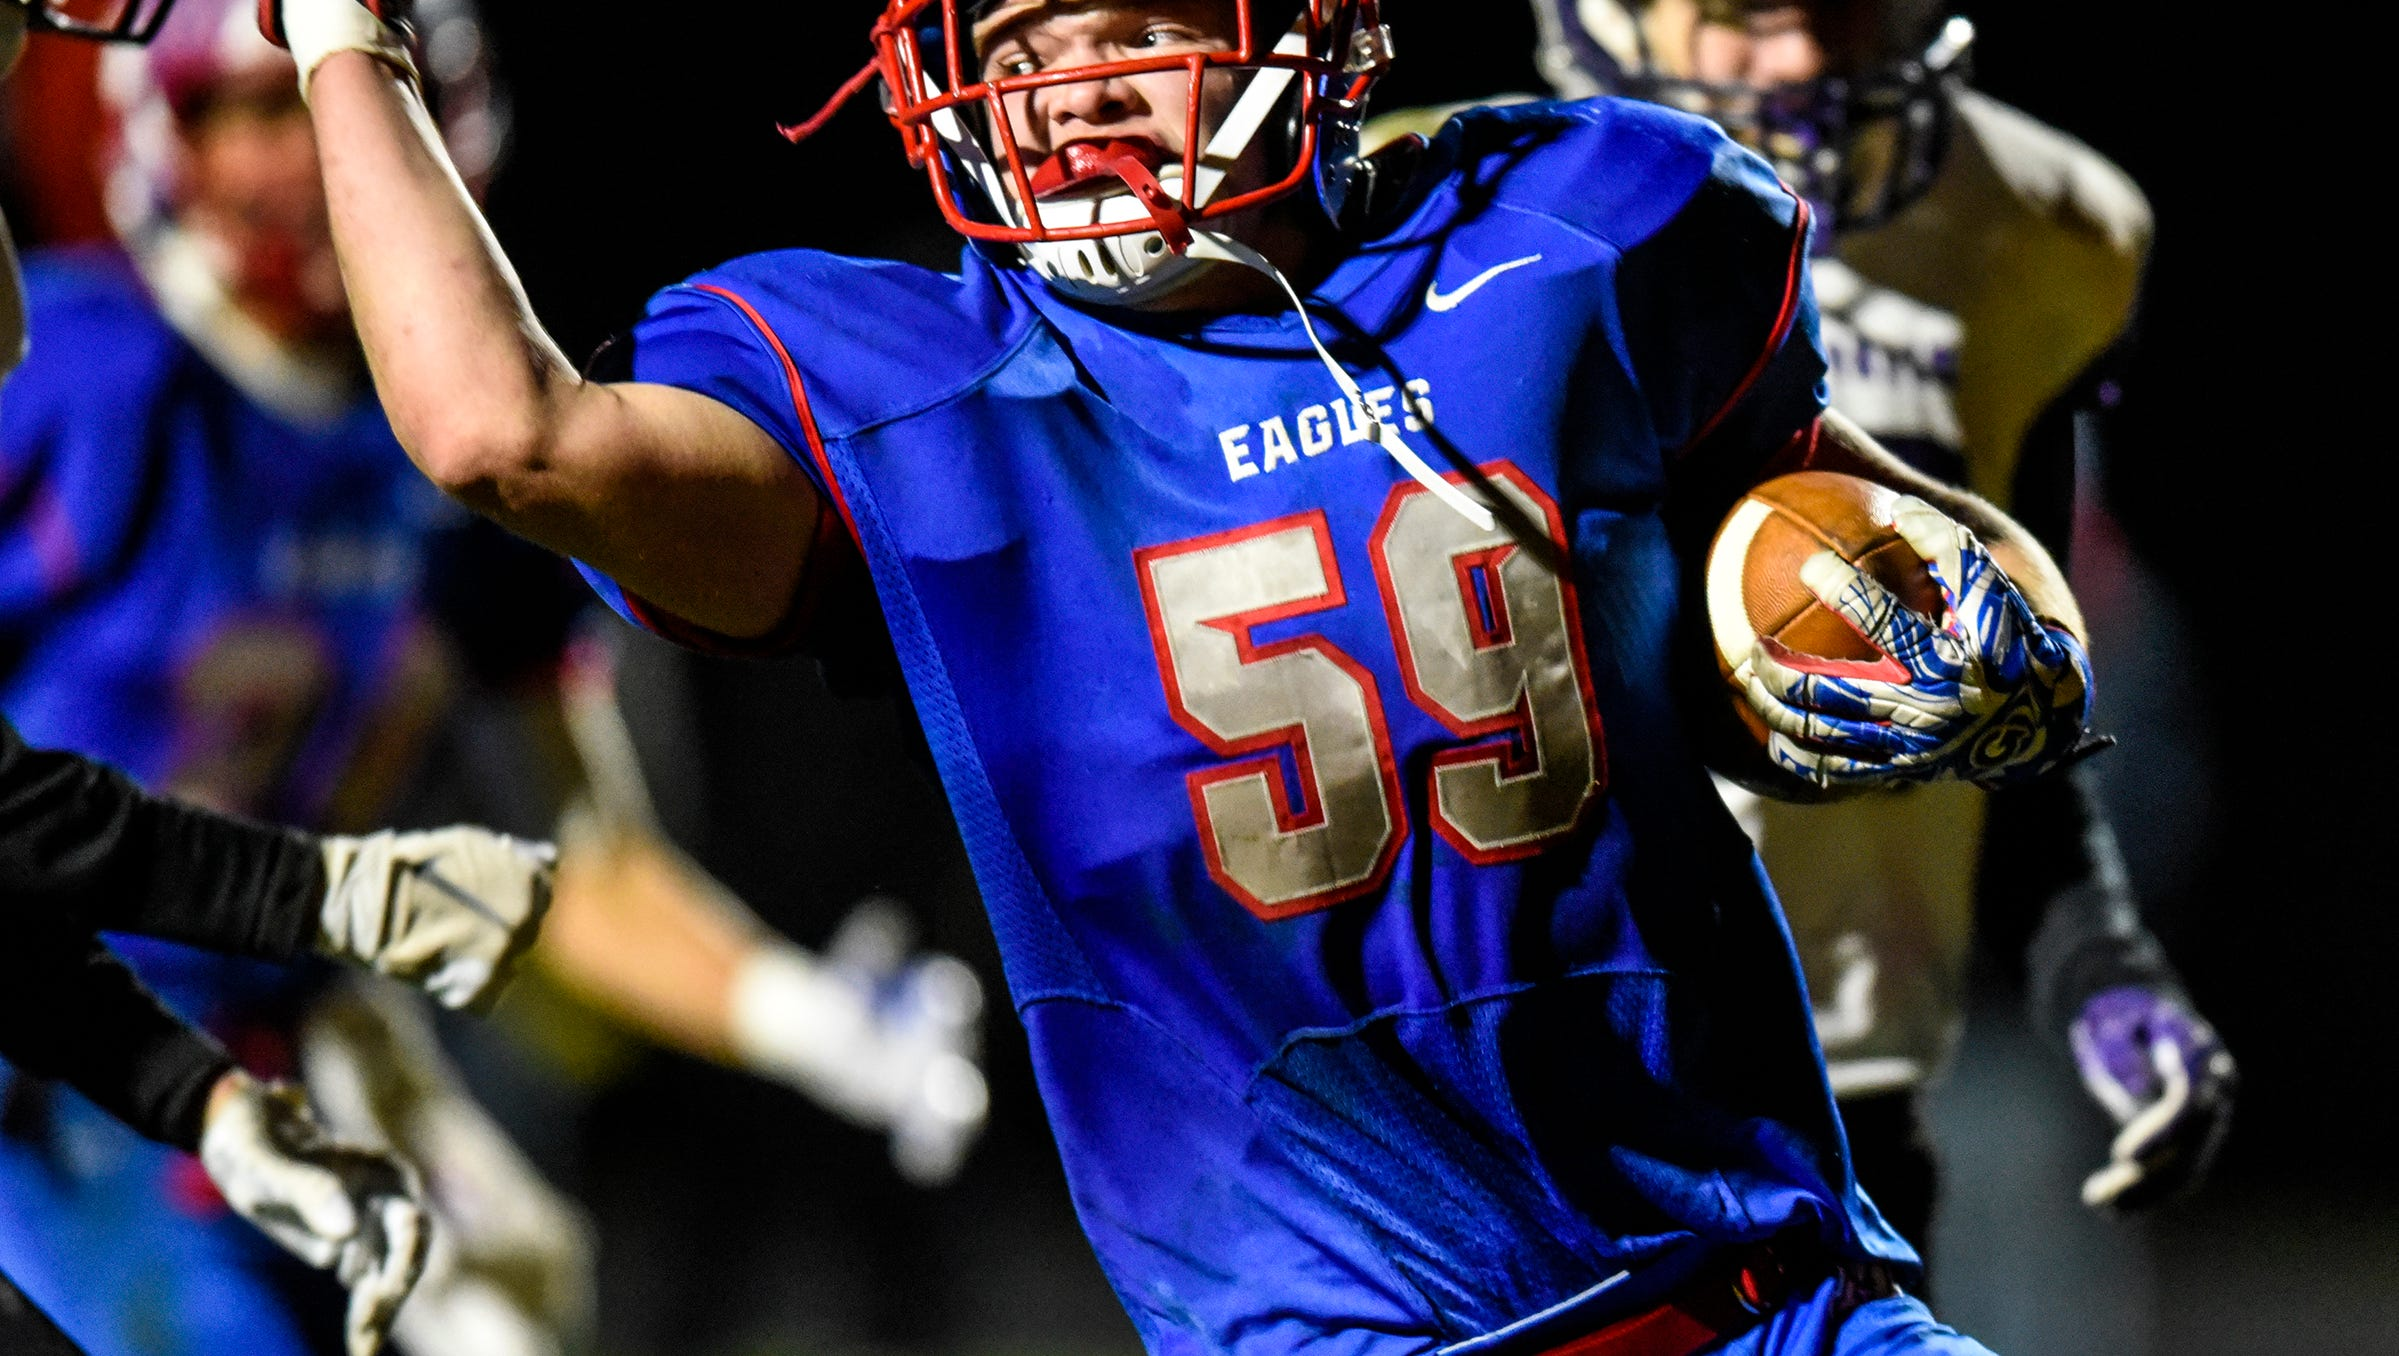 Apollo's Isaac Erickson-Thoemke celebrates as he crosses the goal line to score a touchdown during the Tuesday, Oct. 23, game against Little Falls in St. Cloud.